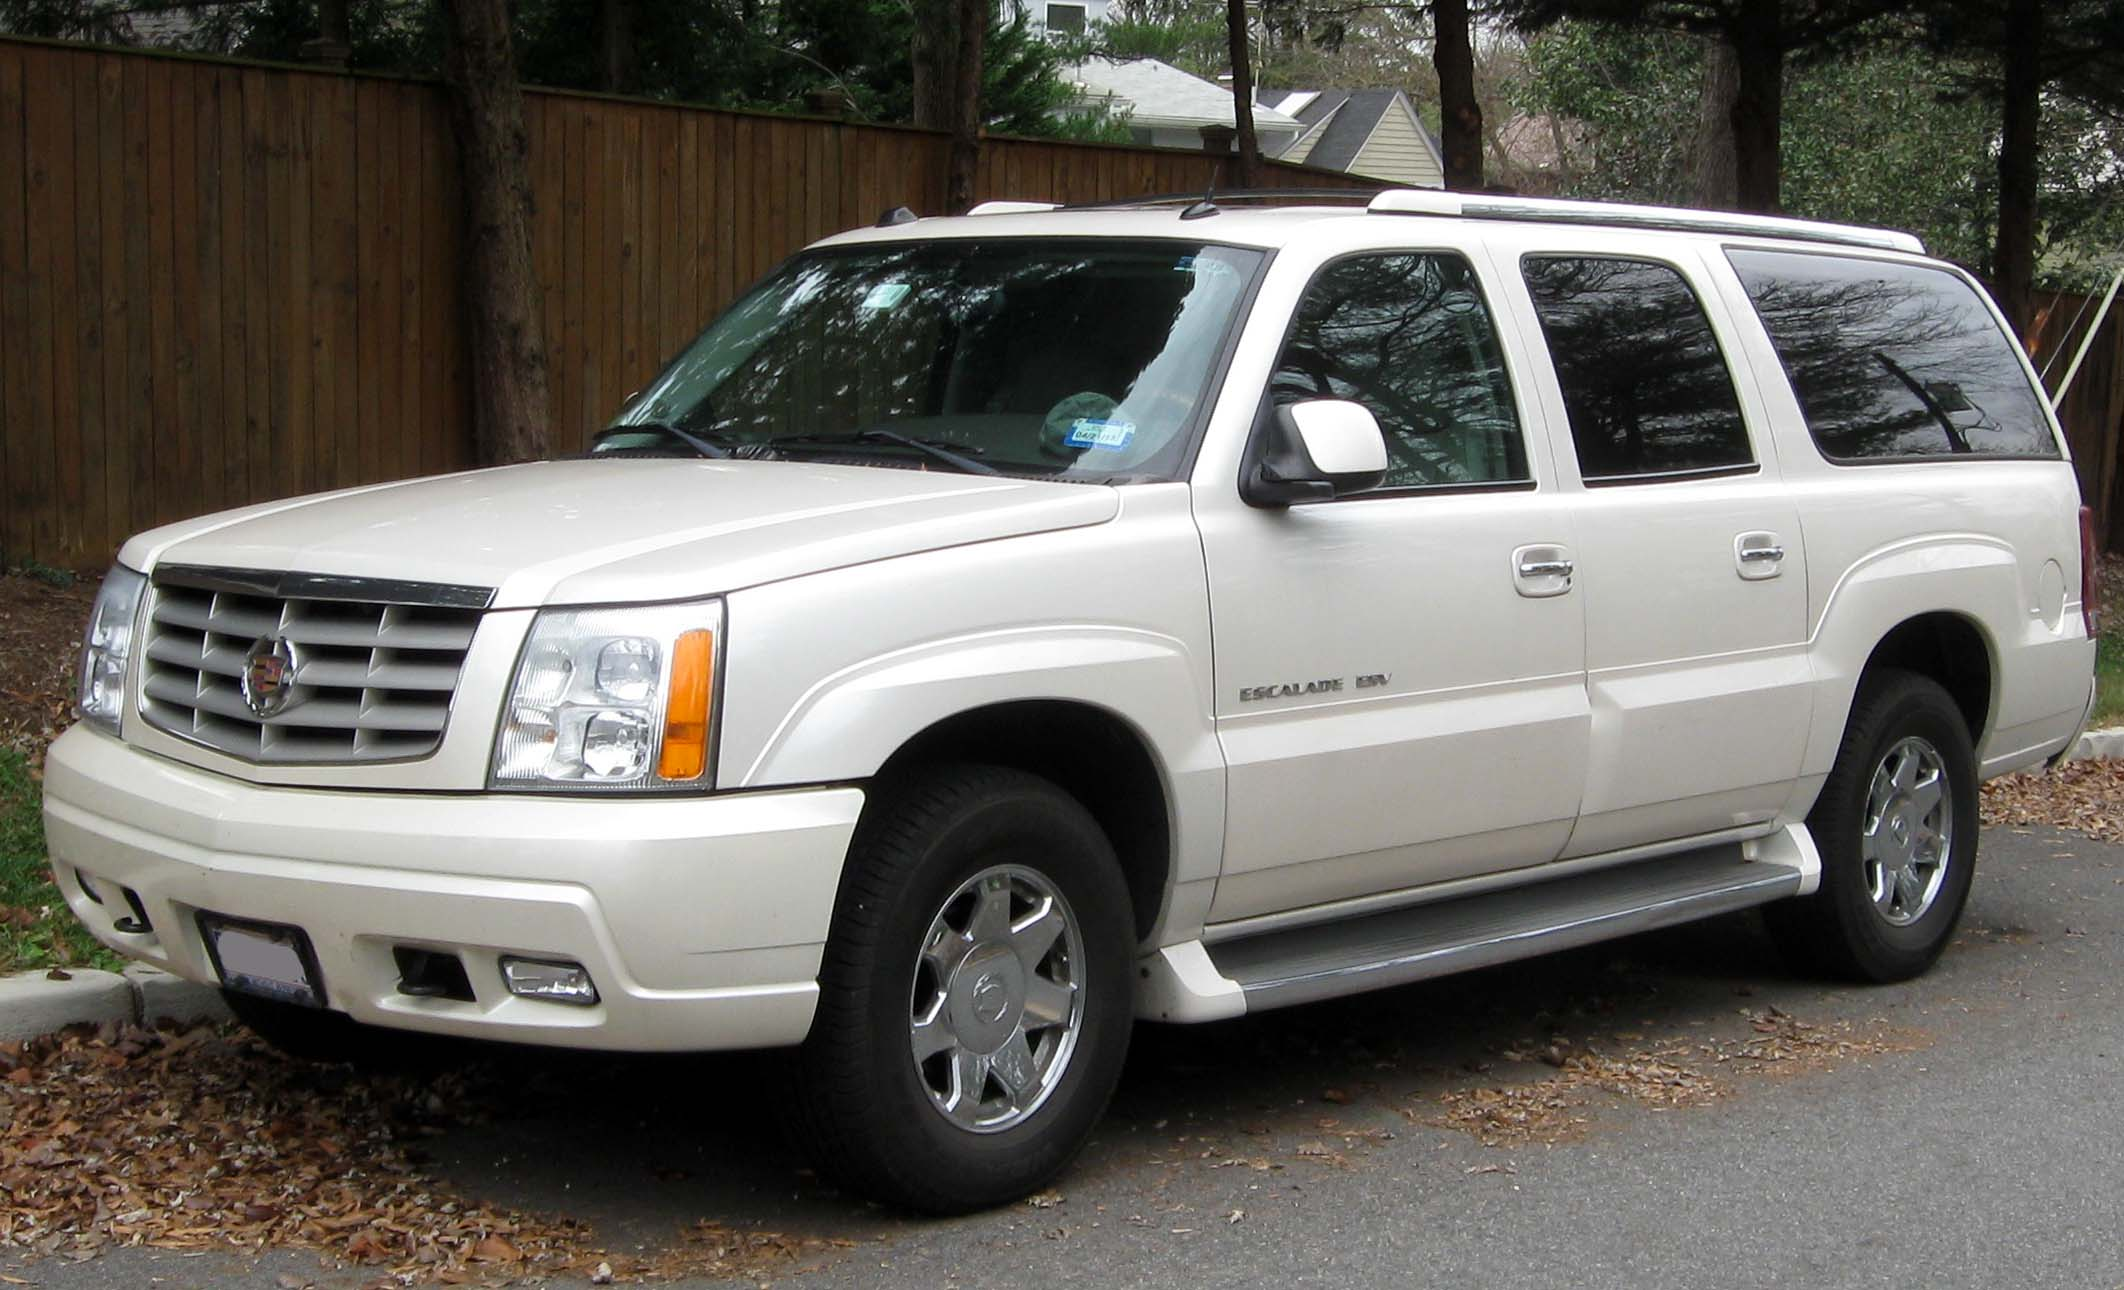 gmc yukon (gmt800) 2001 models